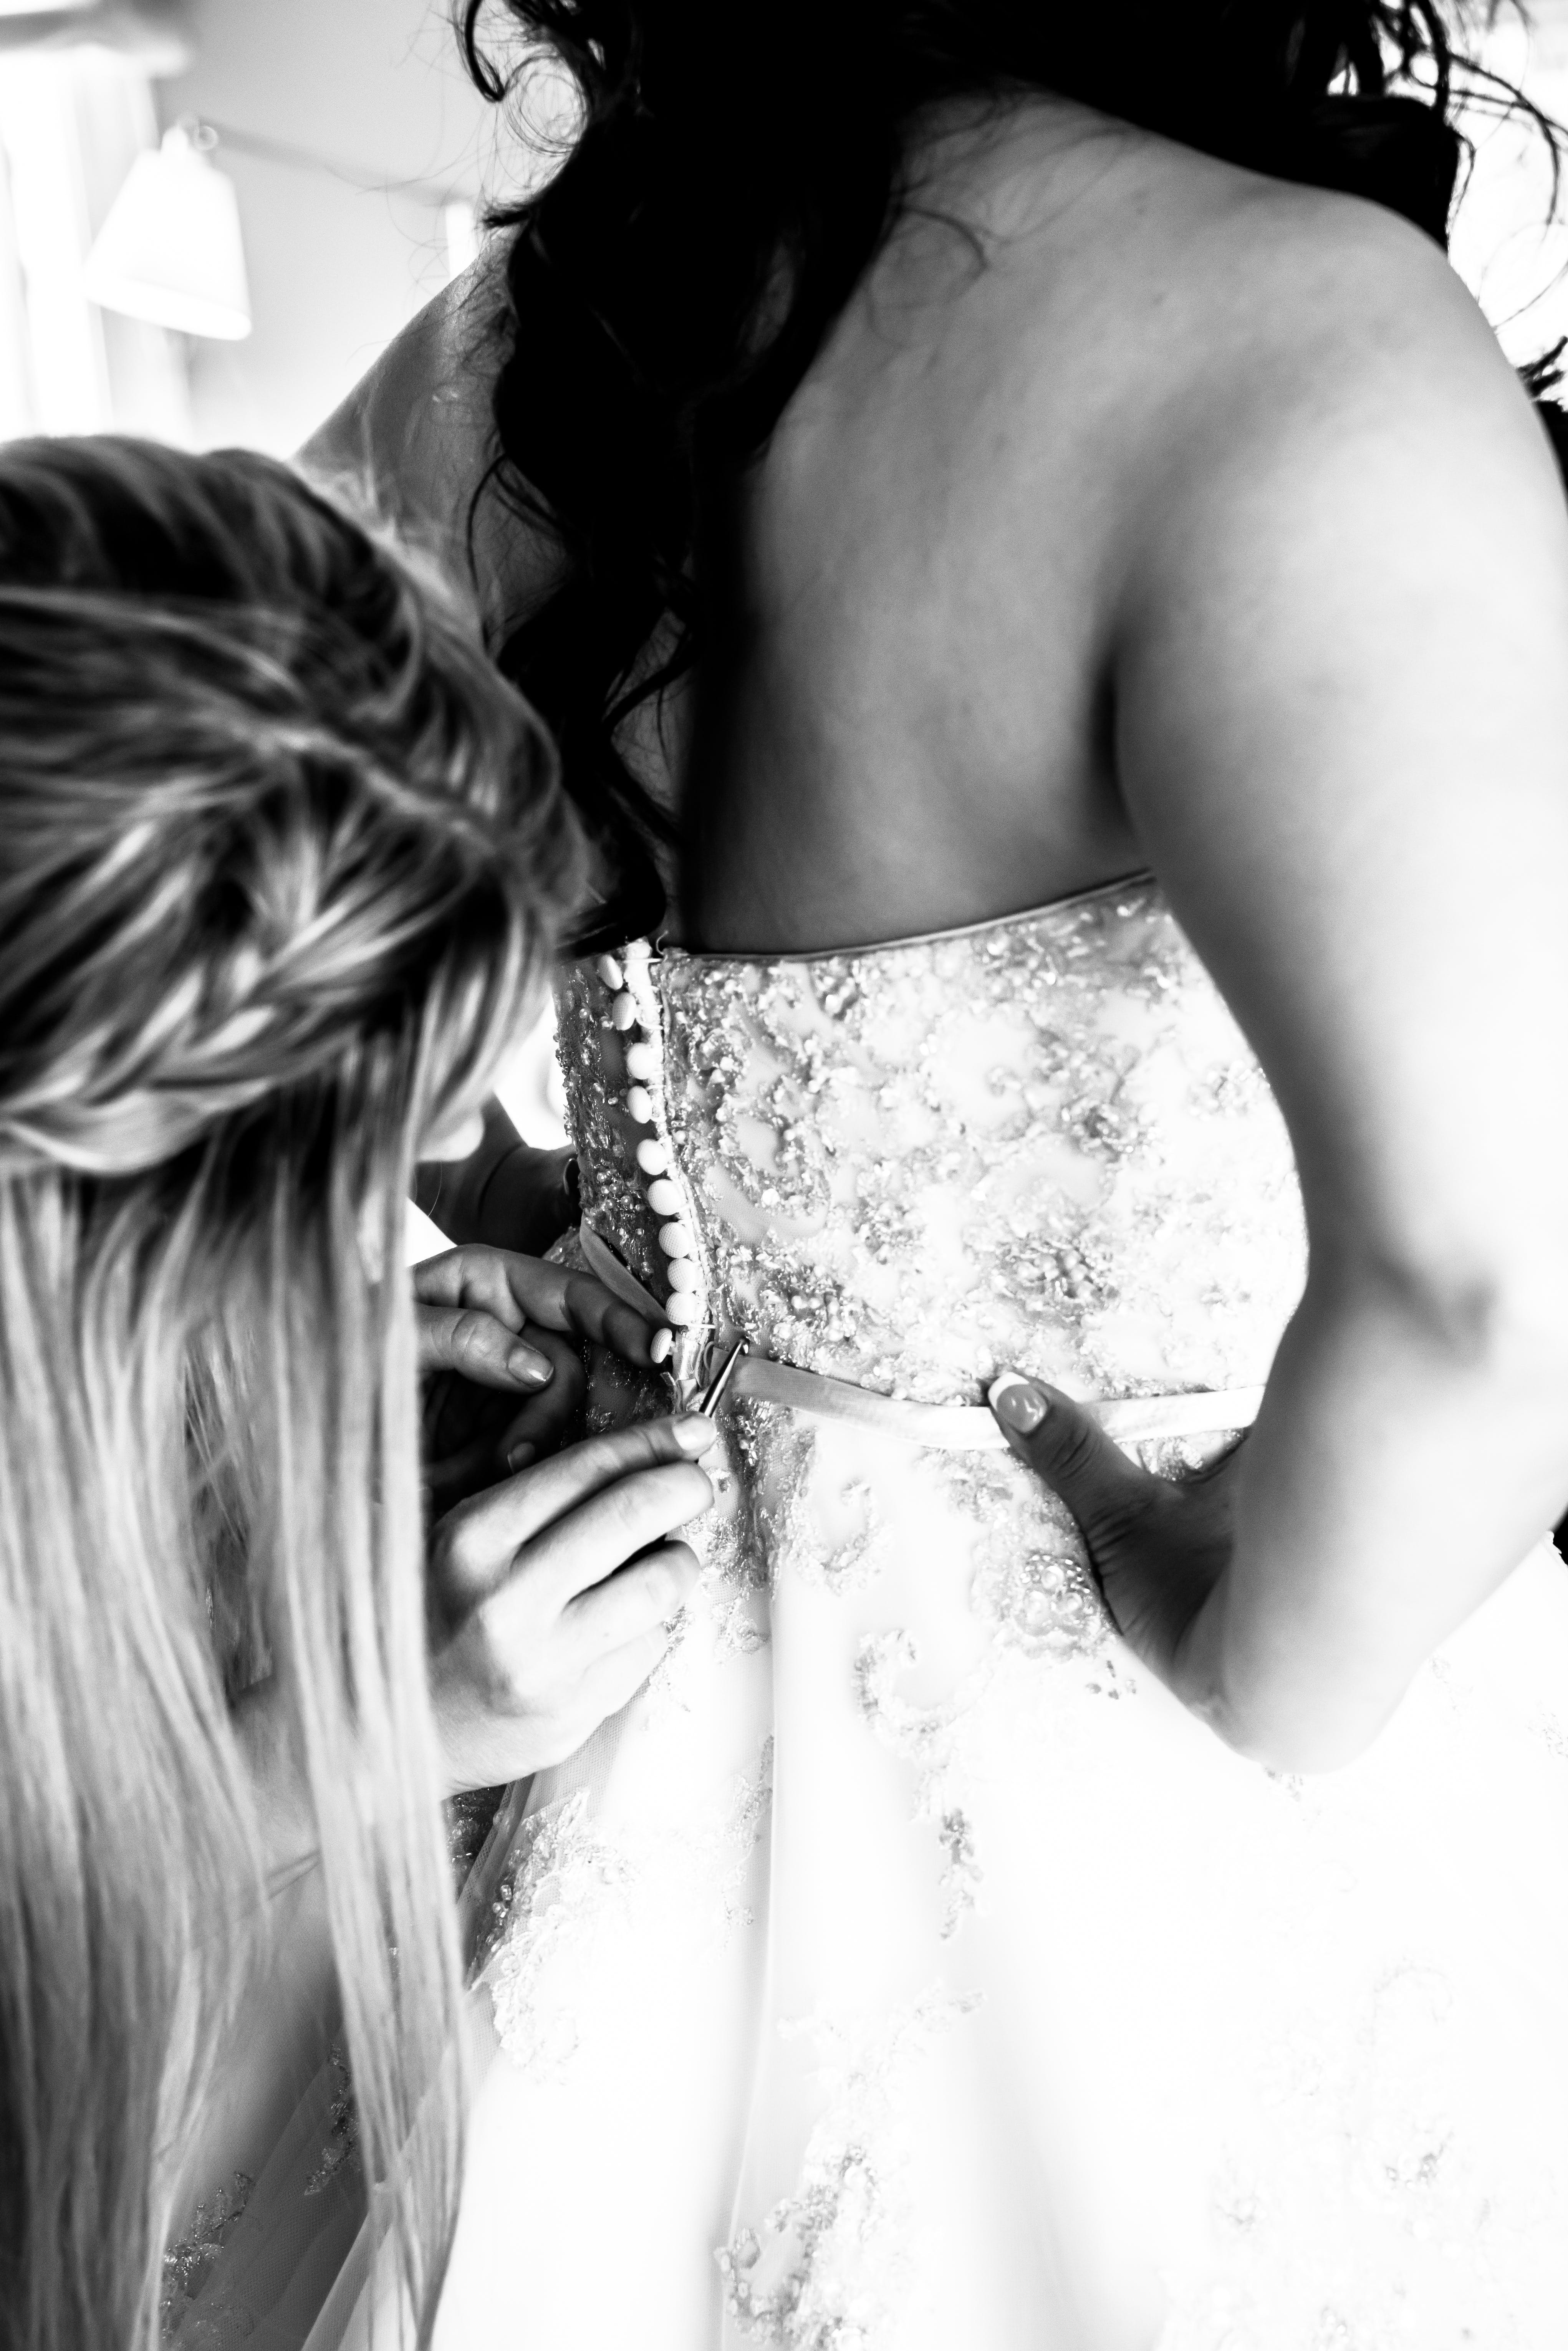 Grayscale Photography of Woman Wearing Bridal Gown